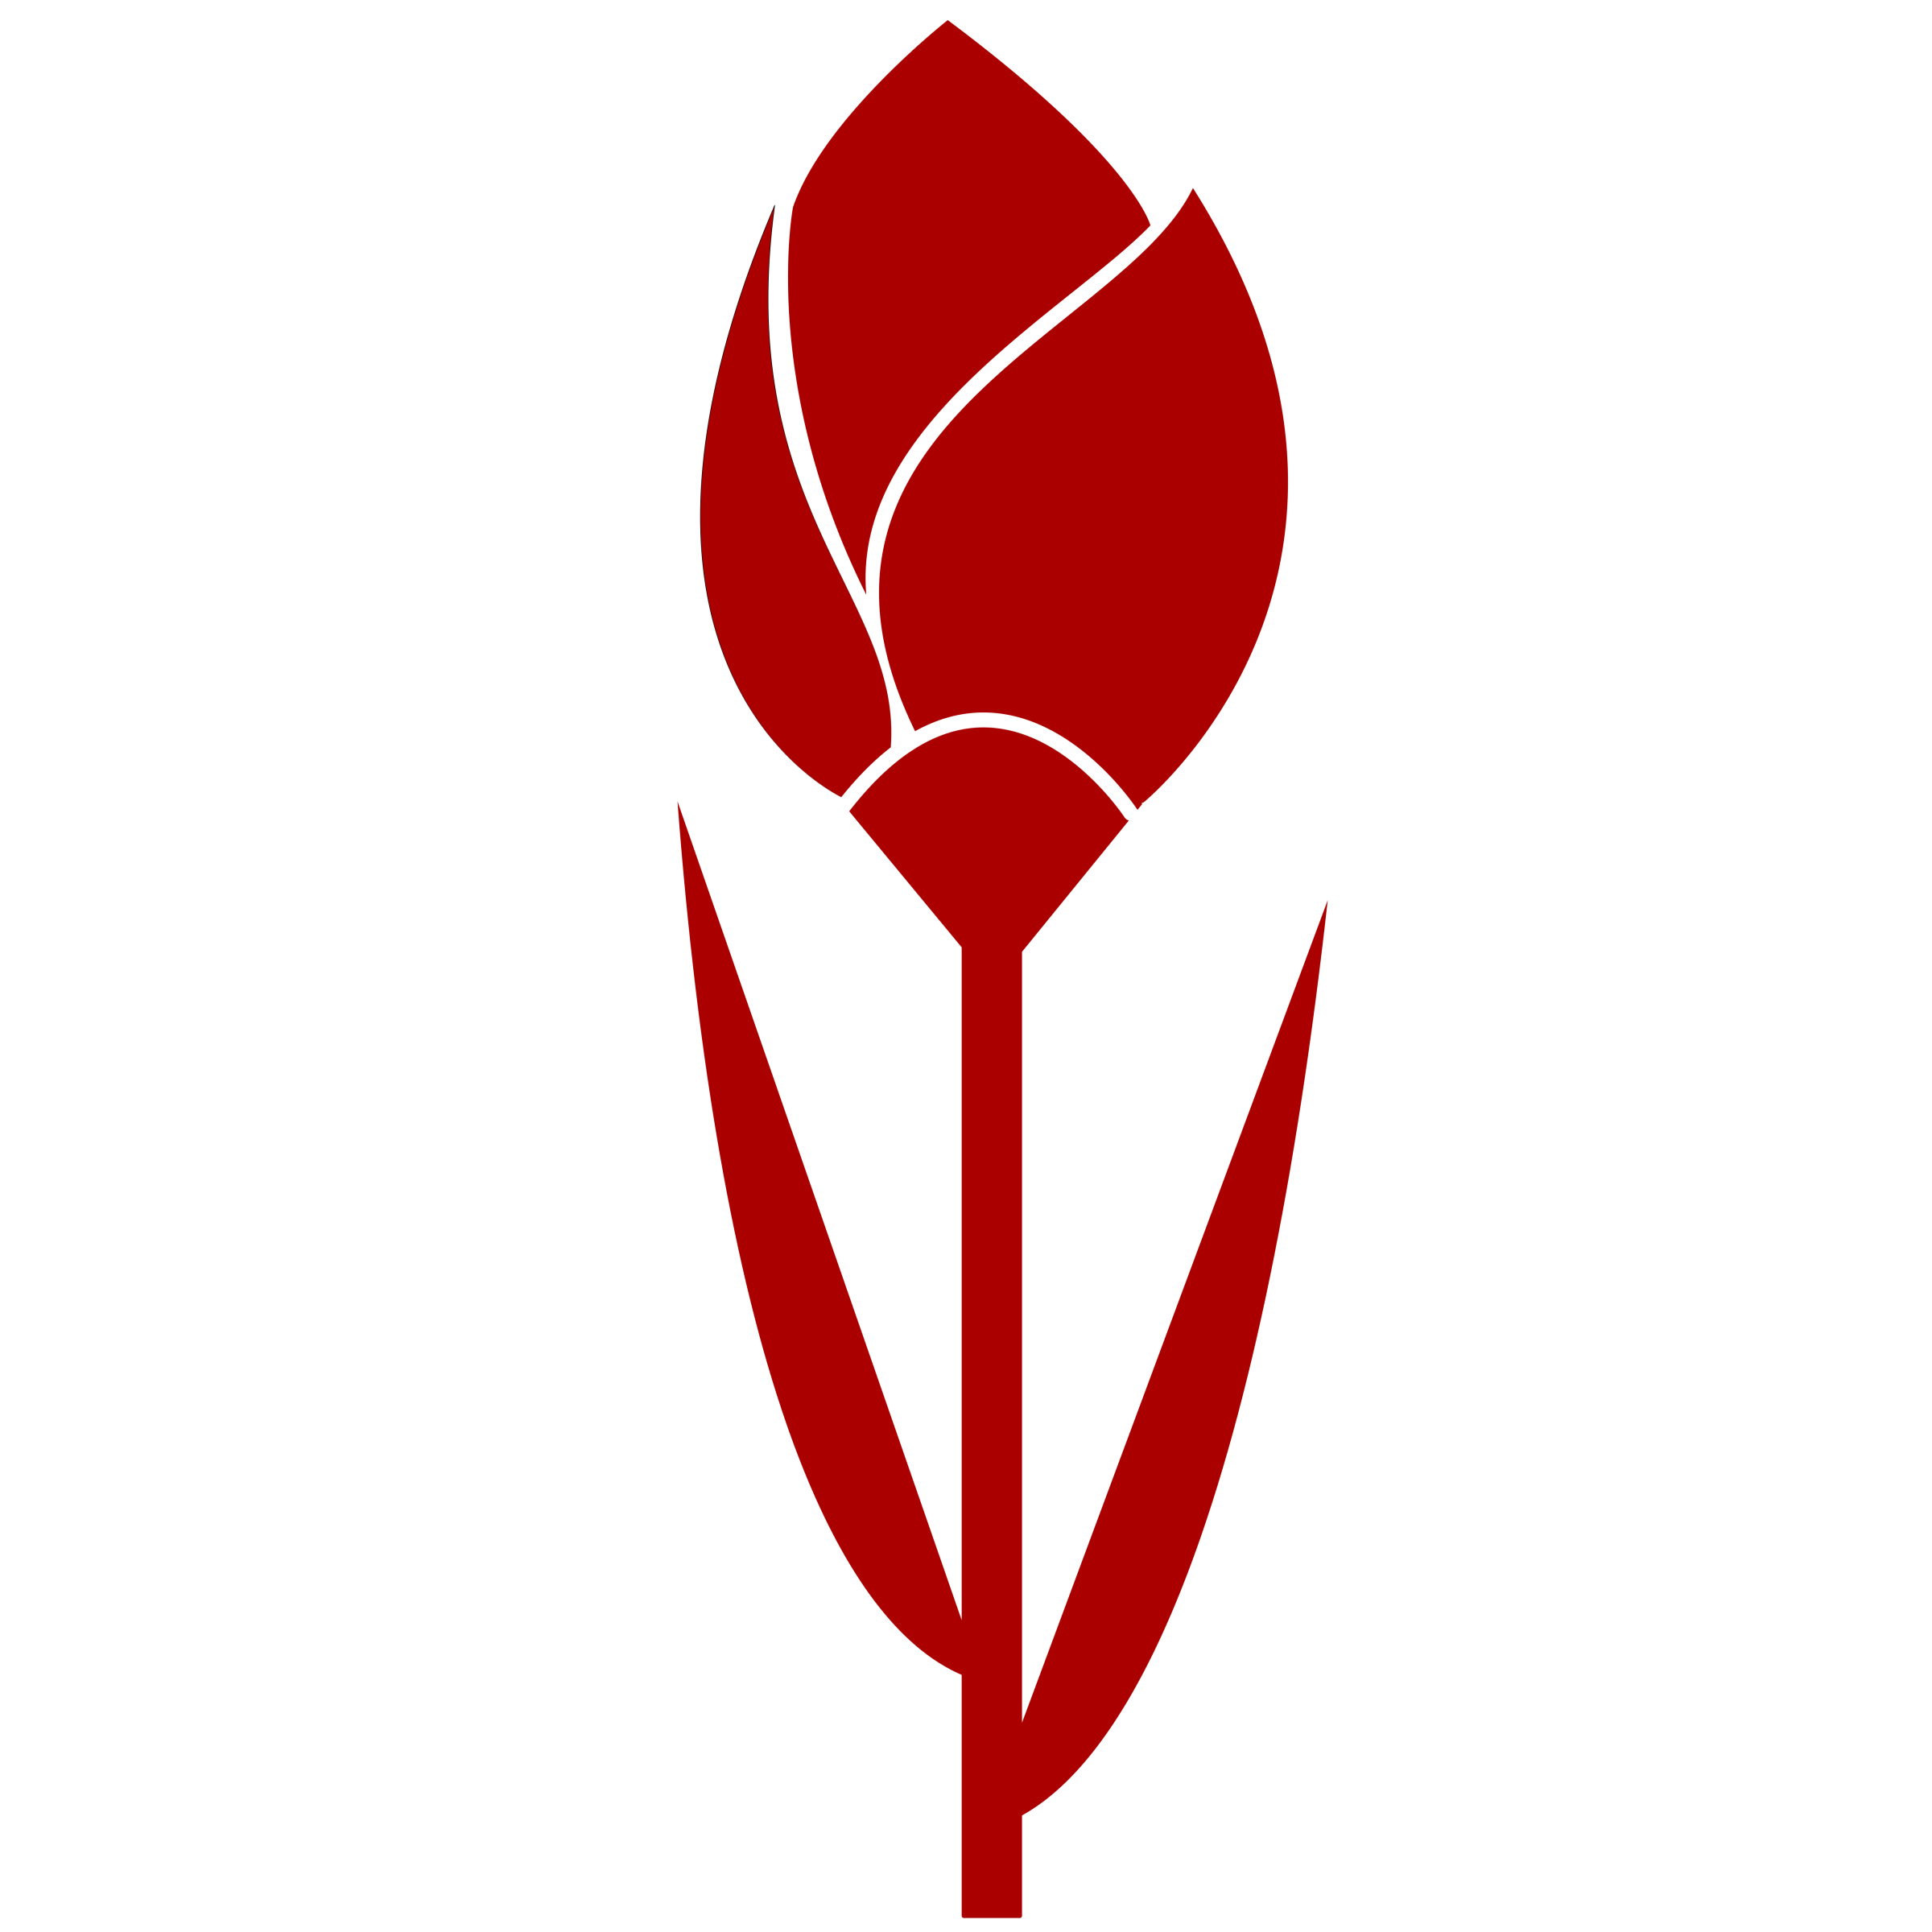 Red clipart color. Tulip simple flower remixed